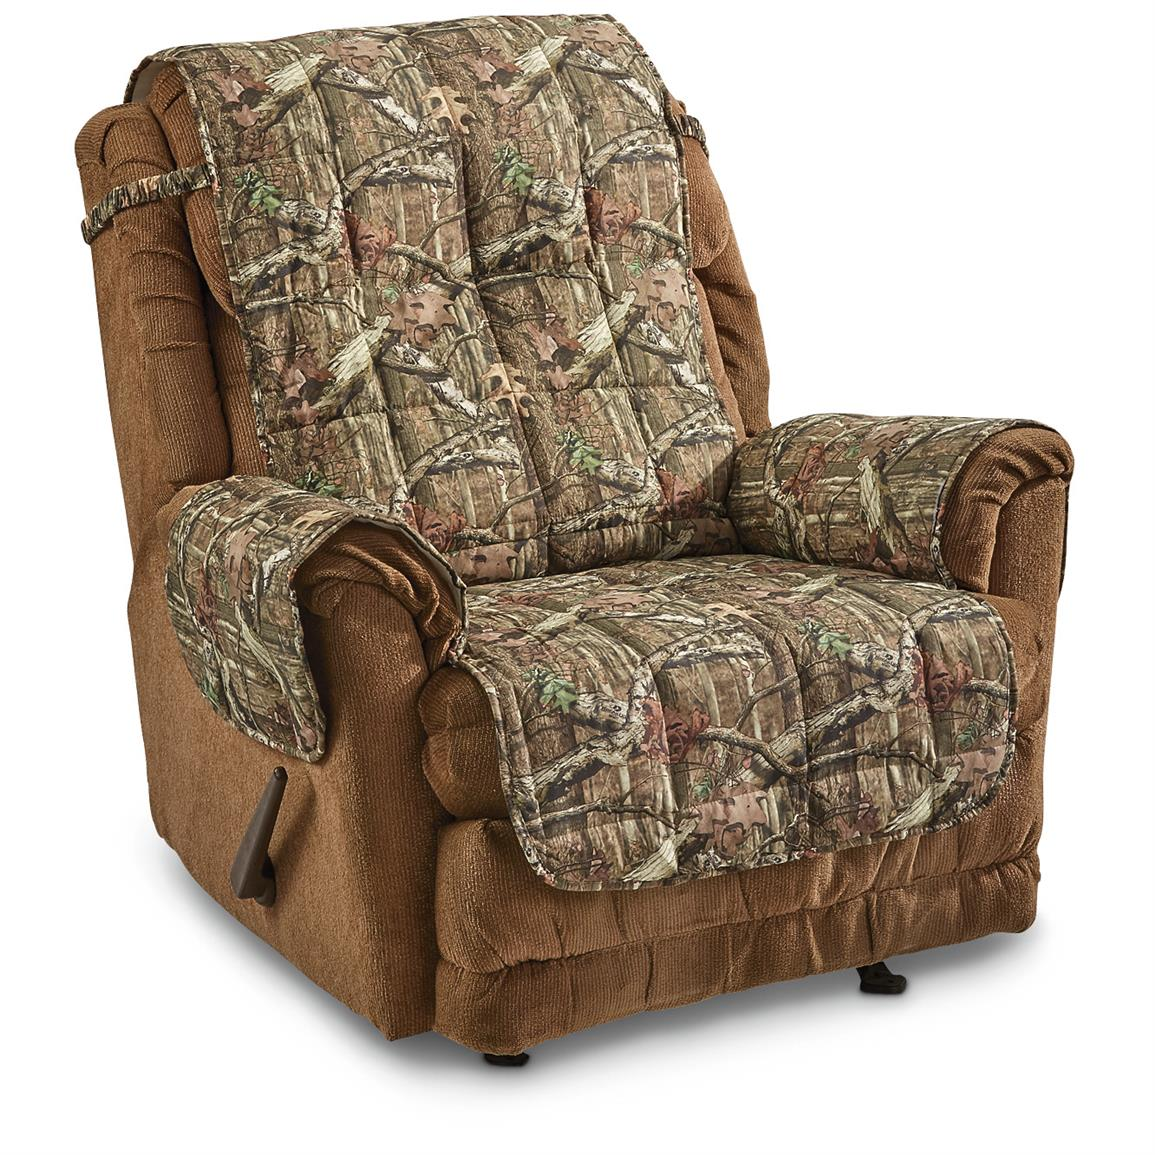 Covers for Couches | Walmart Recliner Covers | Recliner Covers